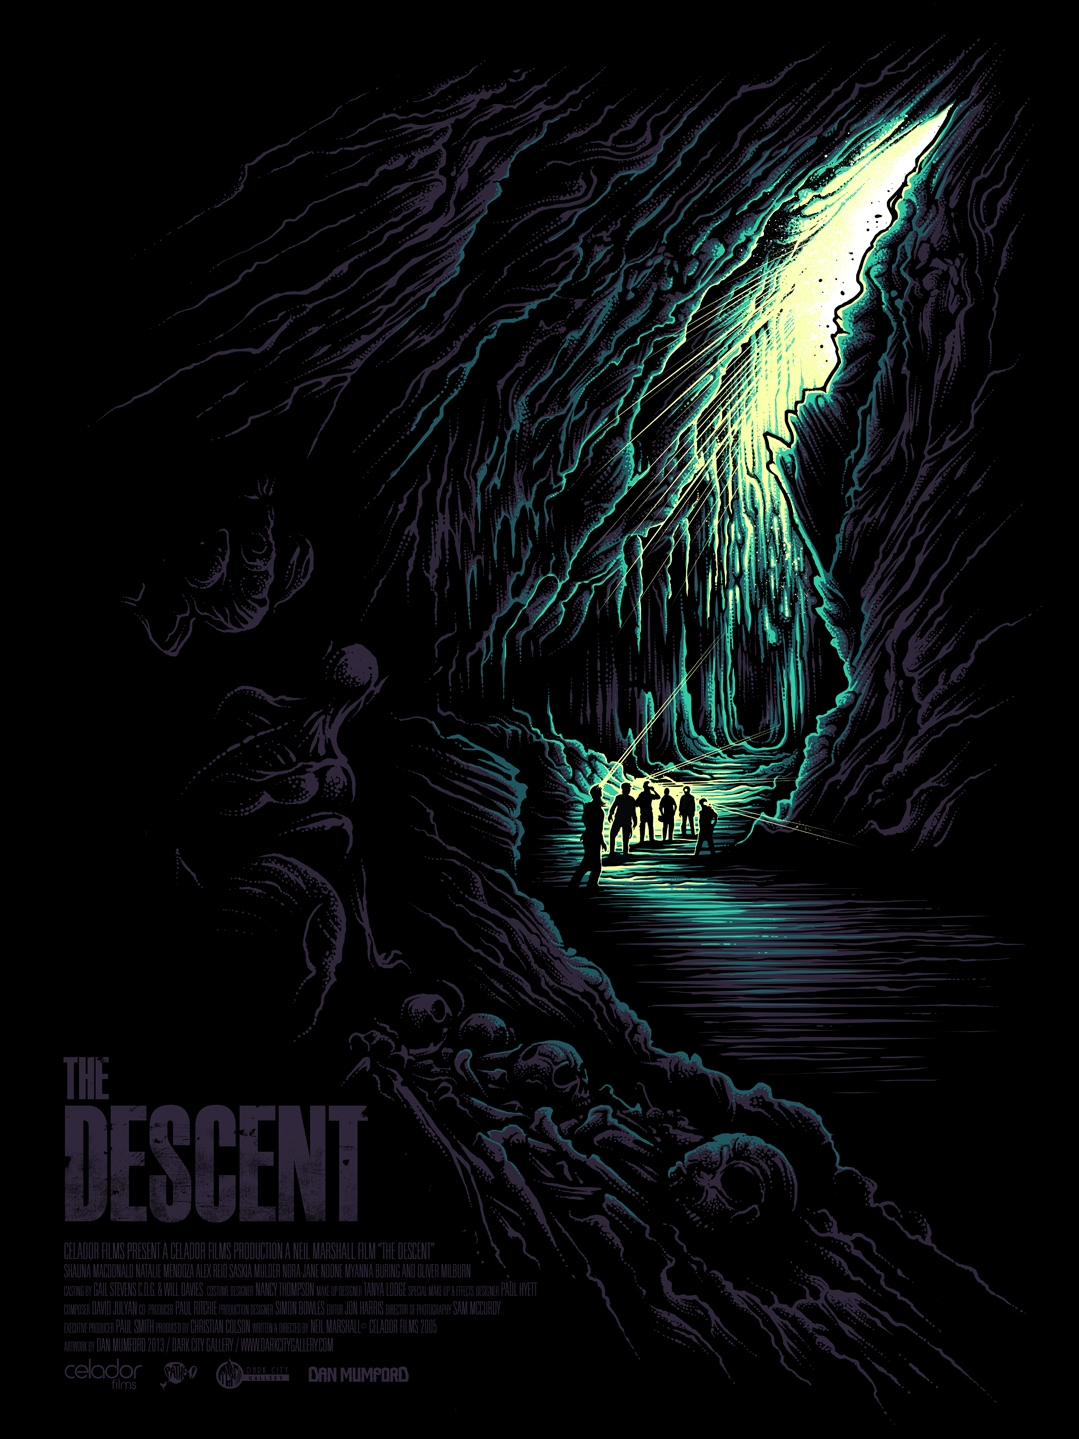 the-descent-by-dan-mumford